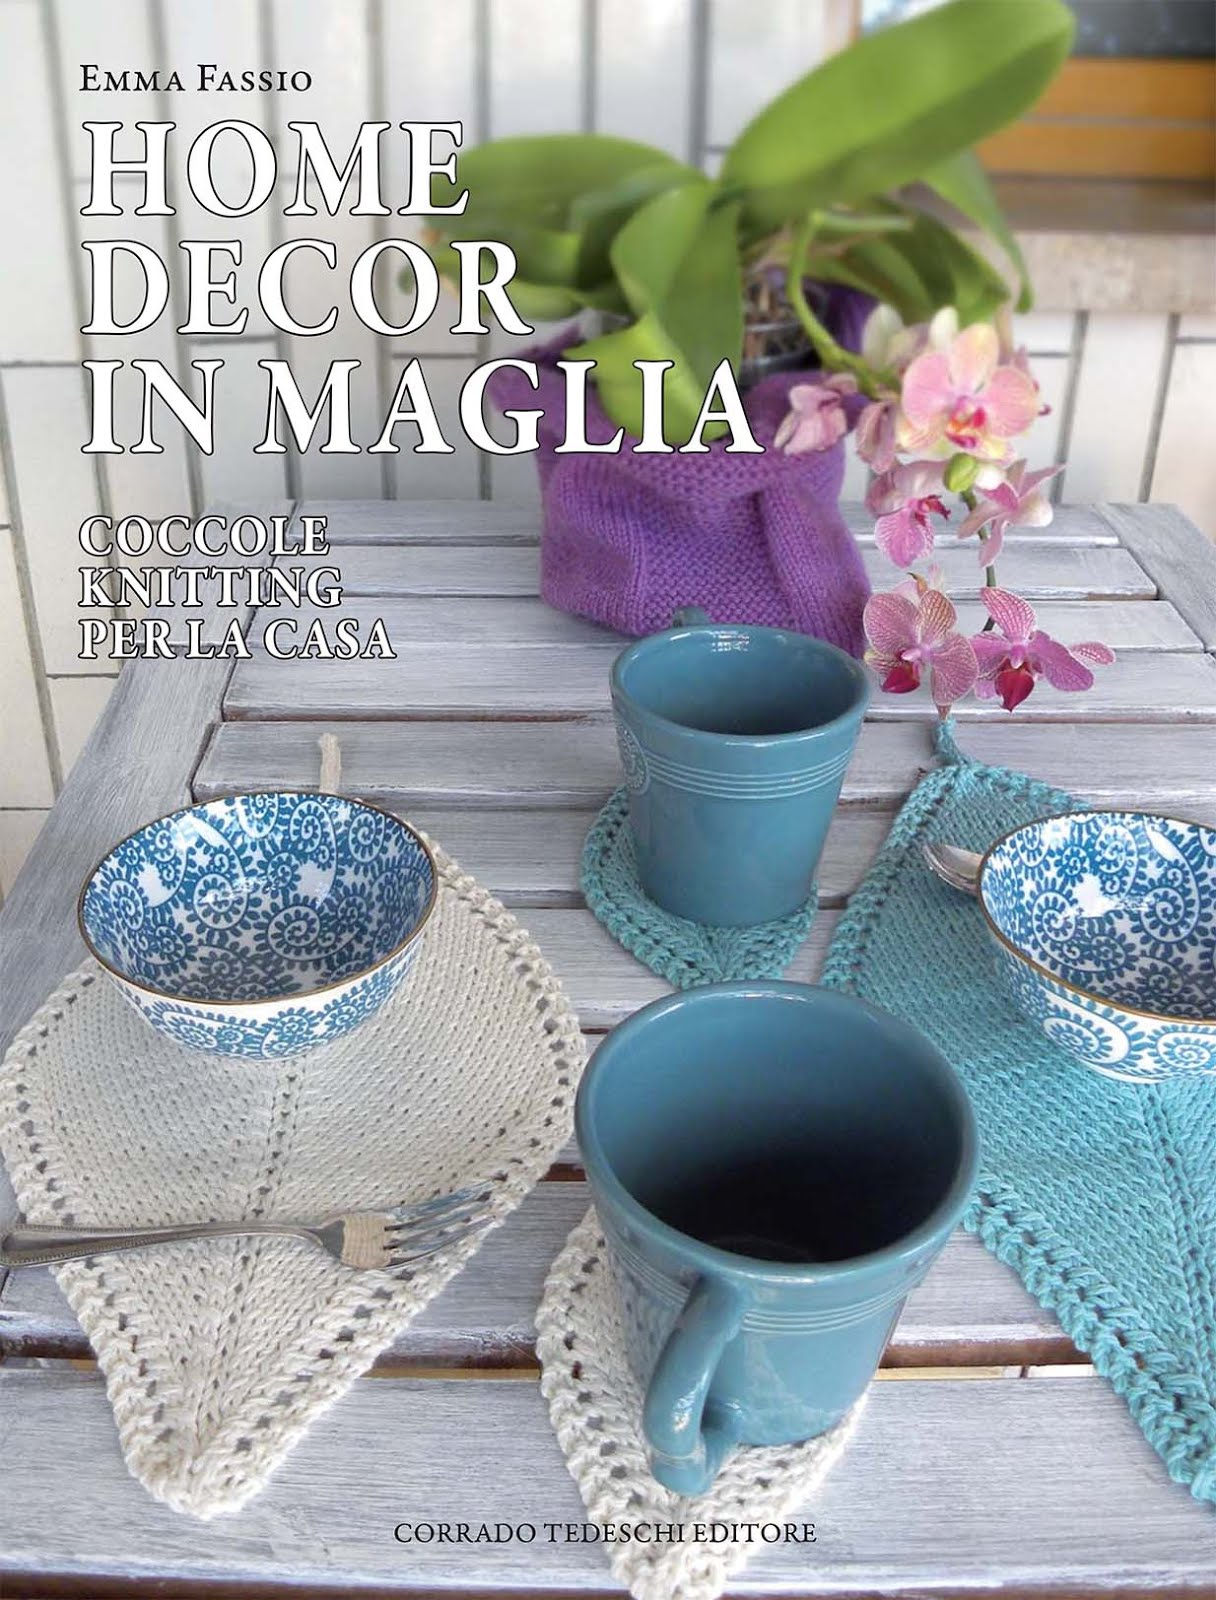 Home Decor in Maglia